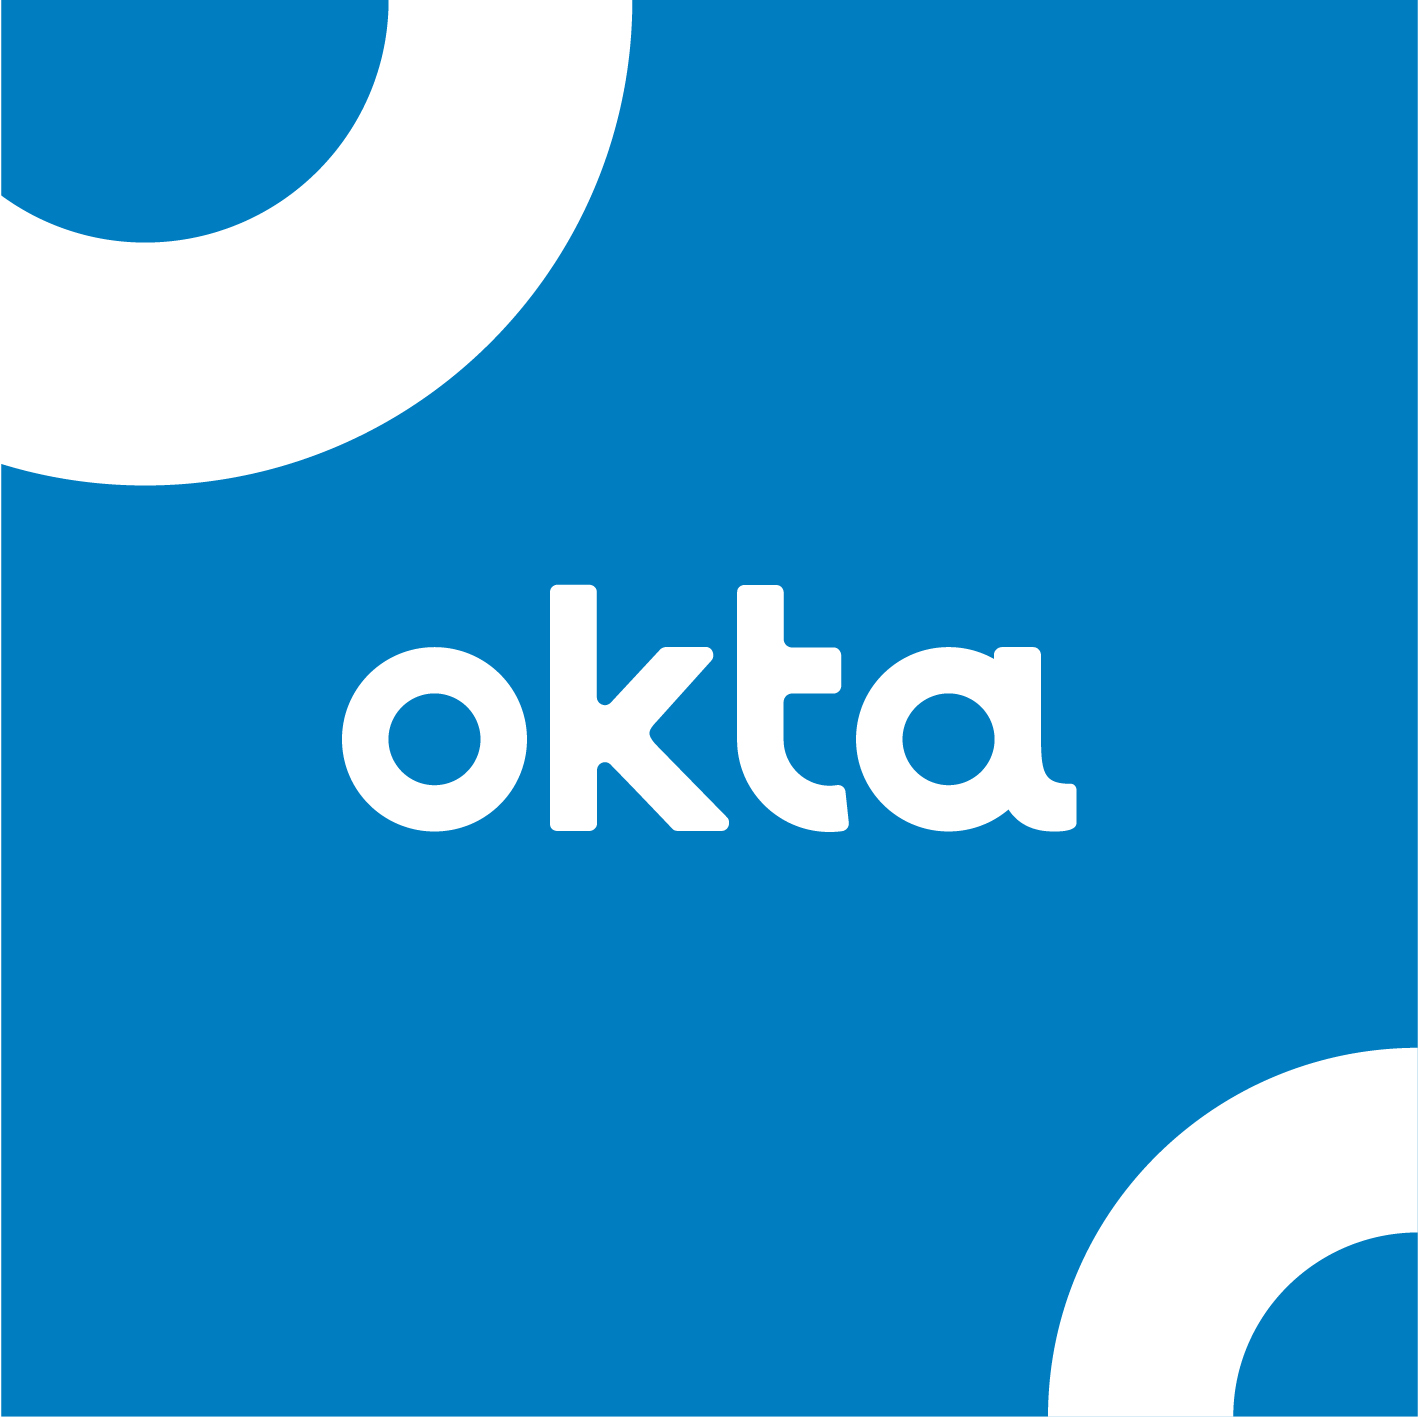 Case study: How Okta achieved 99% brand consistency with SketchDeck